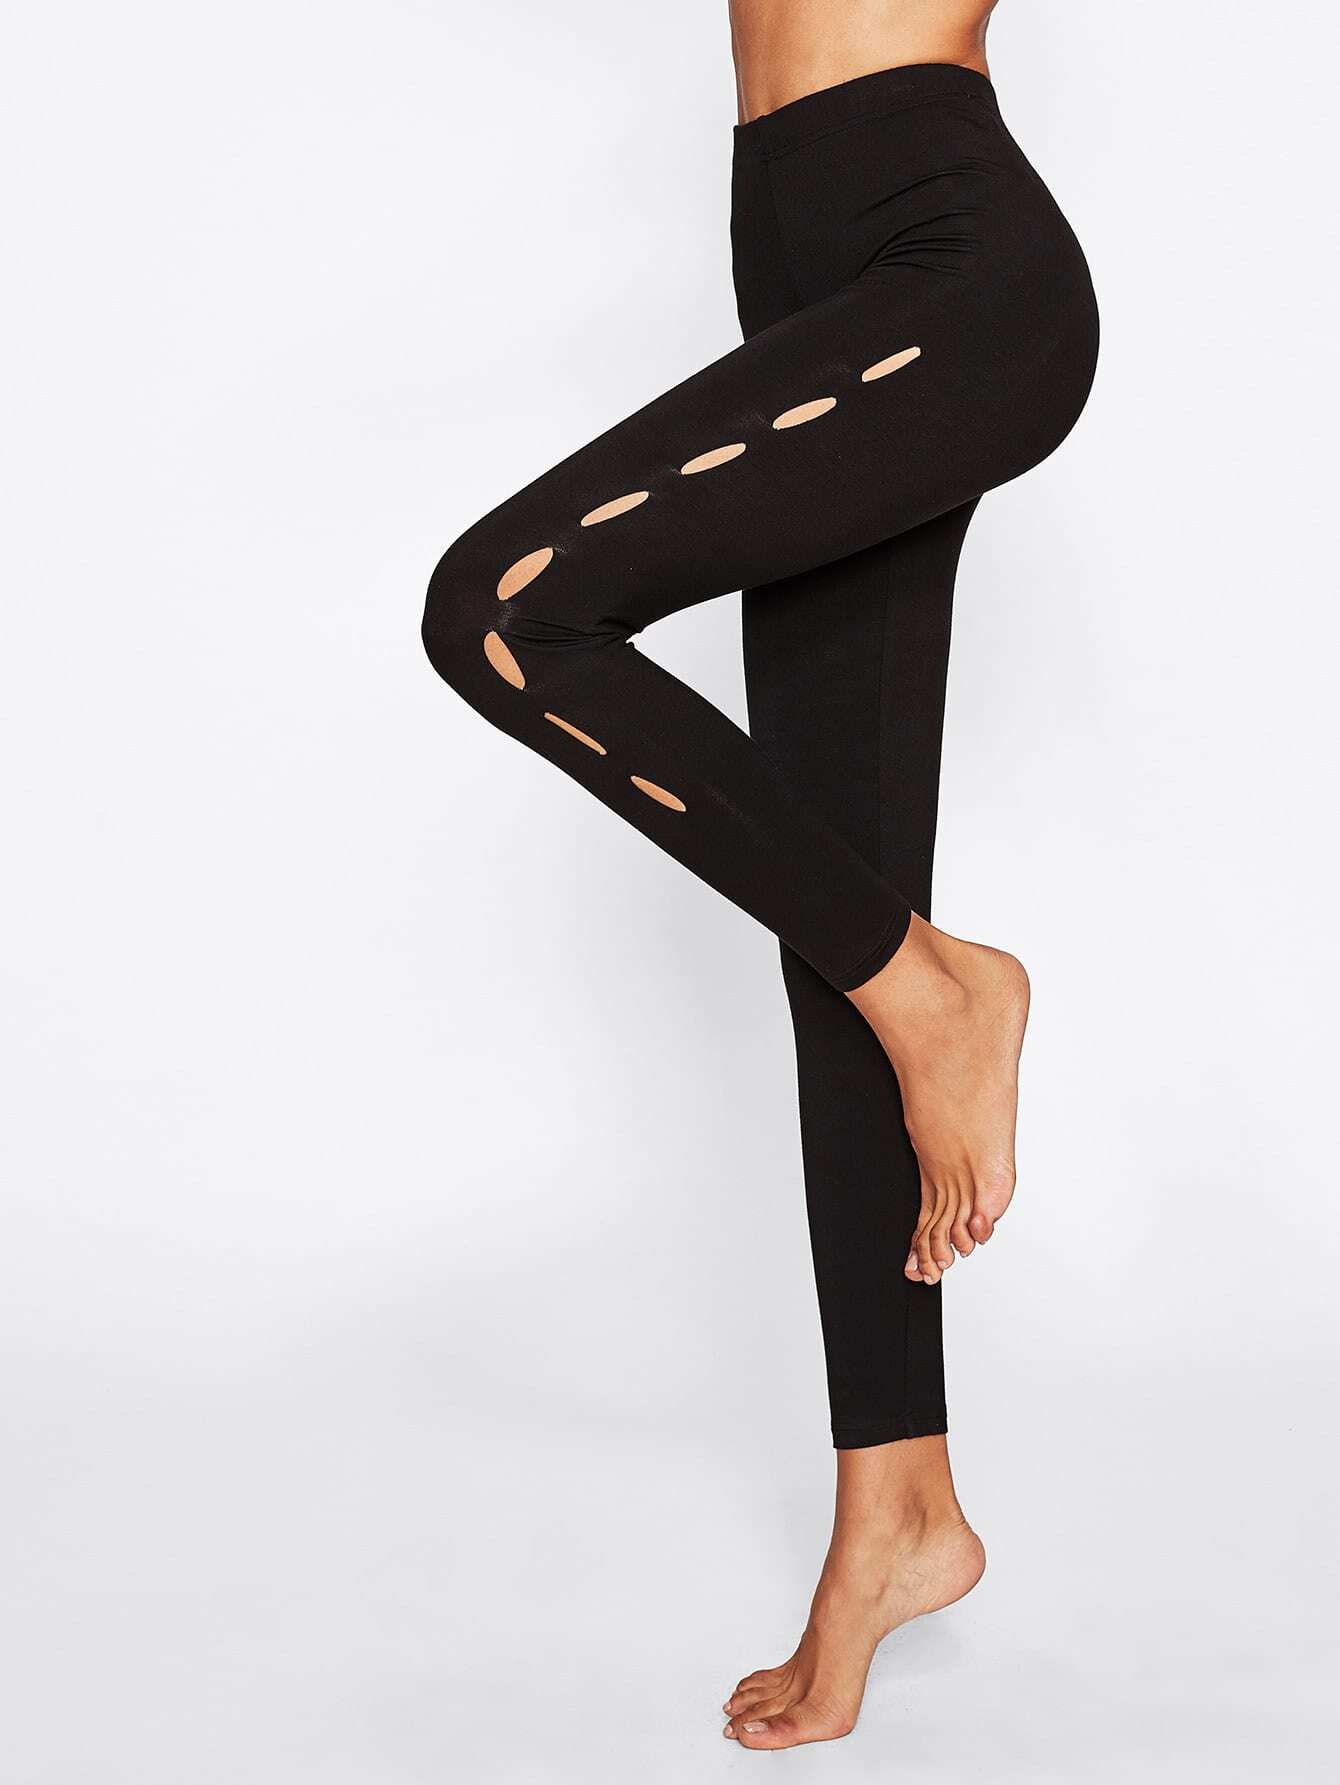 Cutout Side Leggings leggings170807703